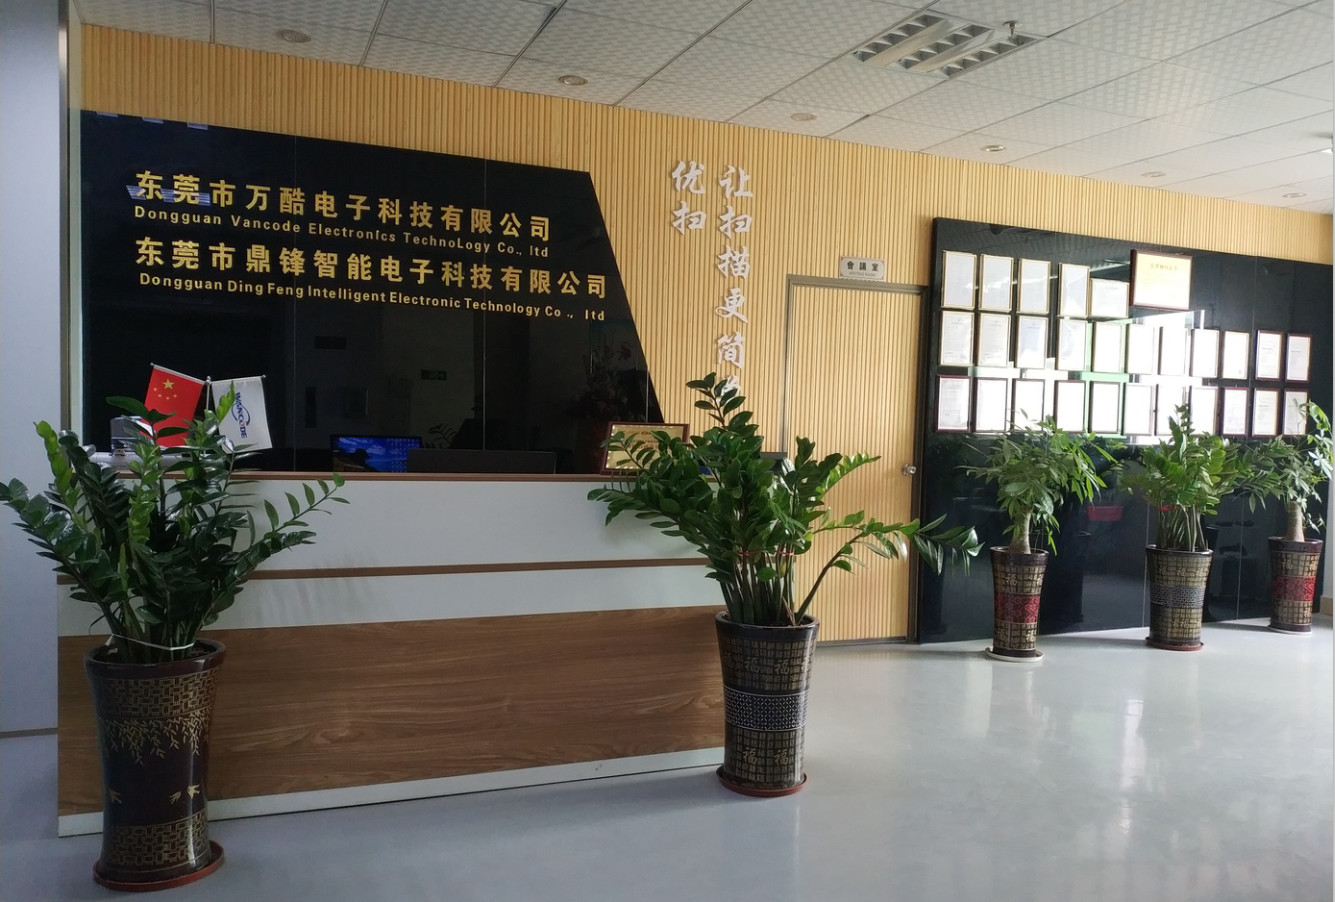 Dongguan Ding Feng Intelligent Electronic Technology Co.,Ltd.